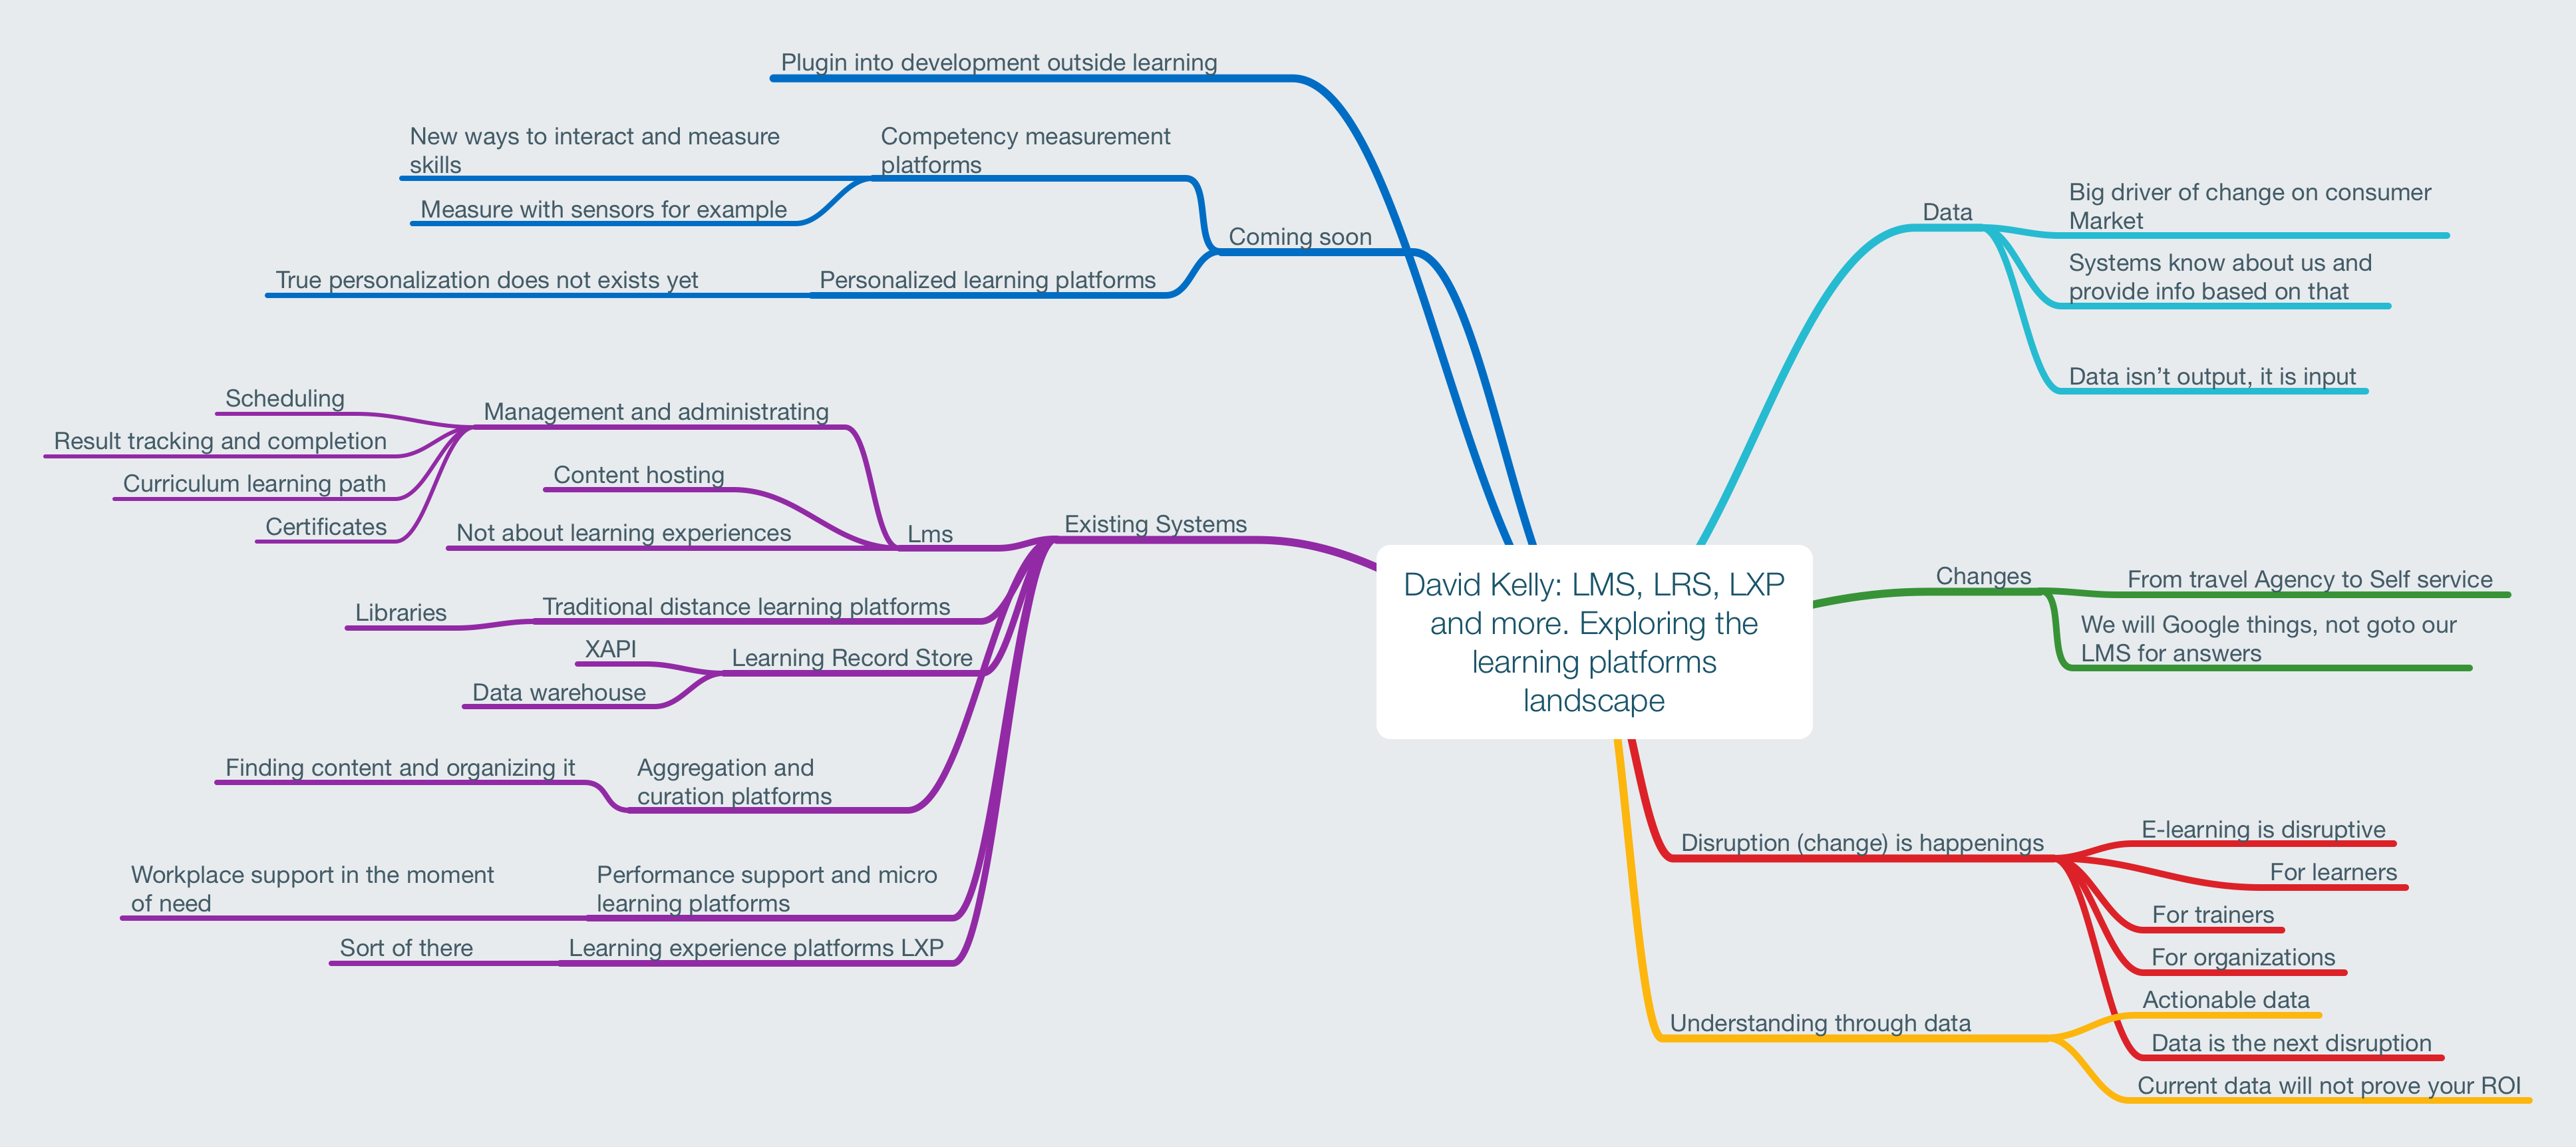 David Kelly LMS, LRS, LXP and more. Exploring the learning platforms landscape.png